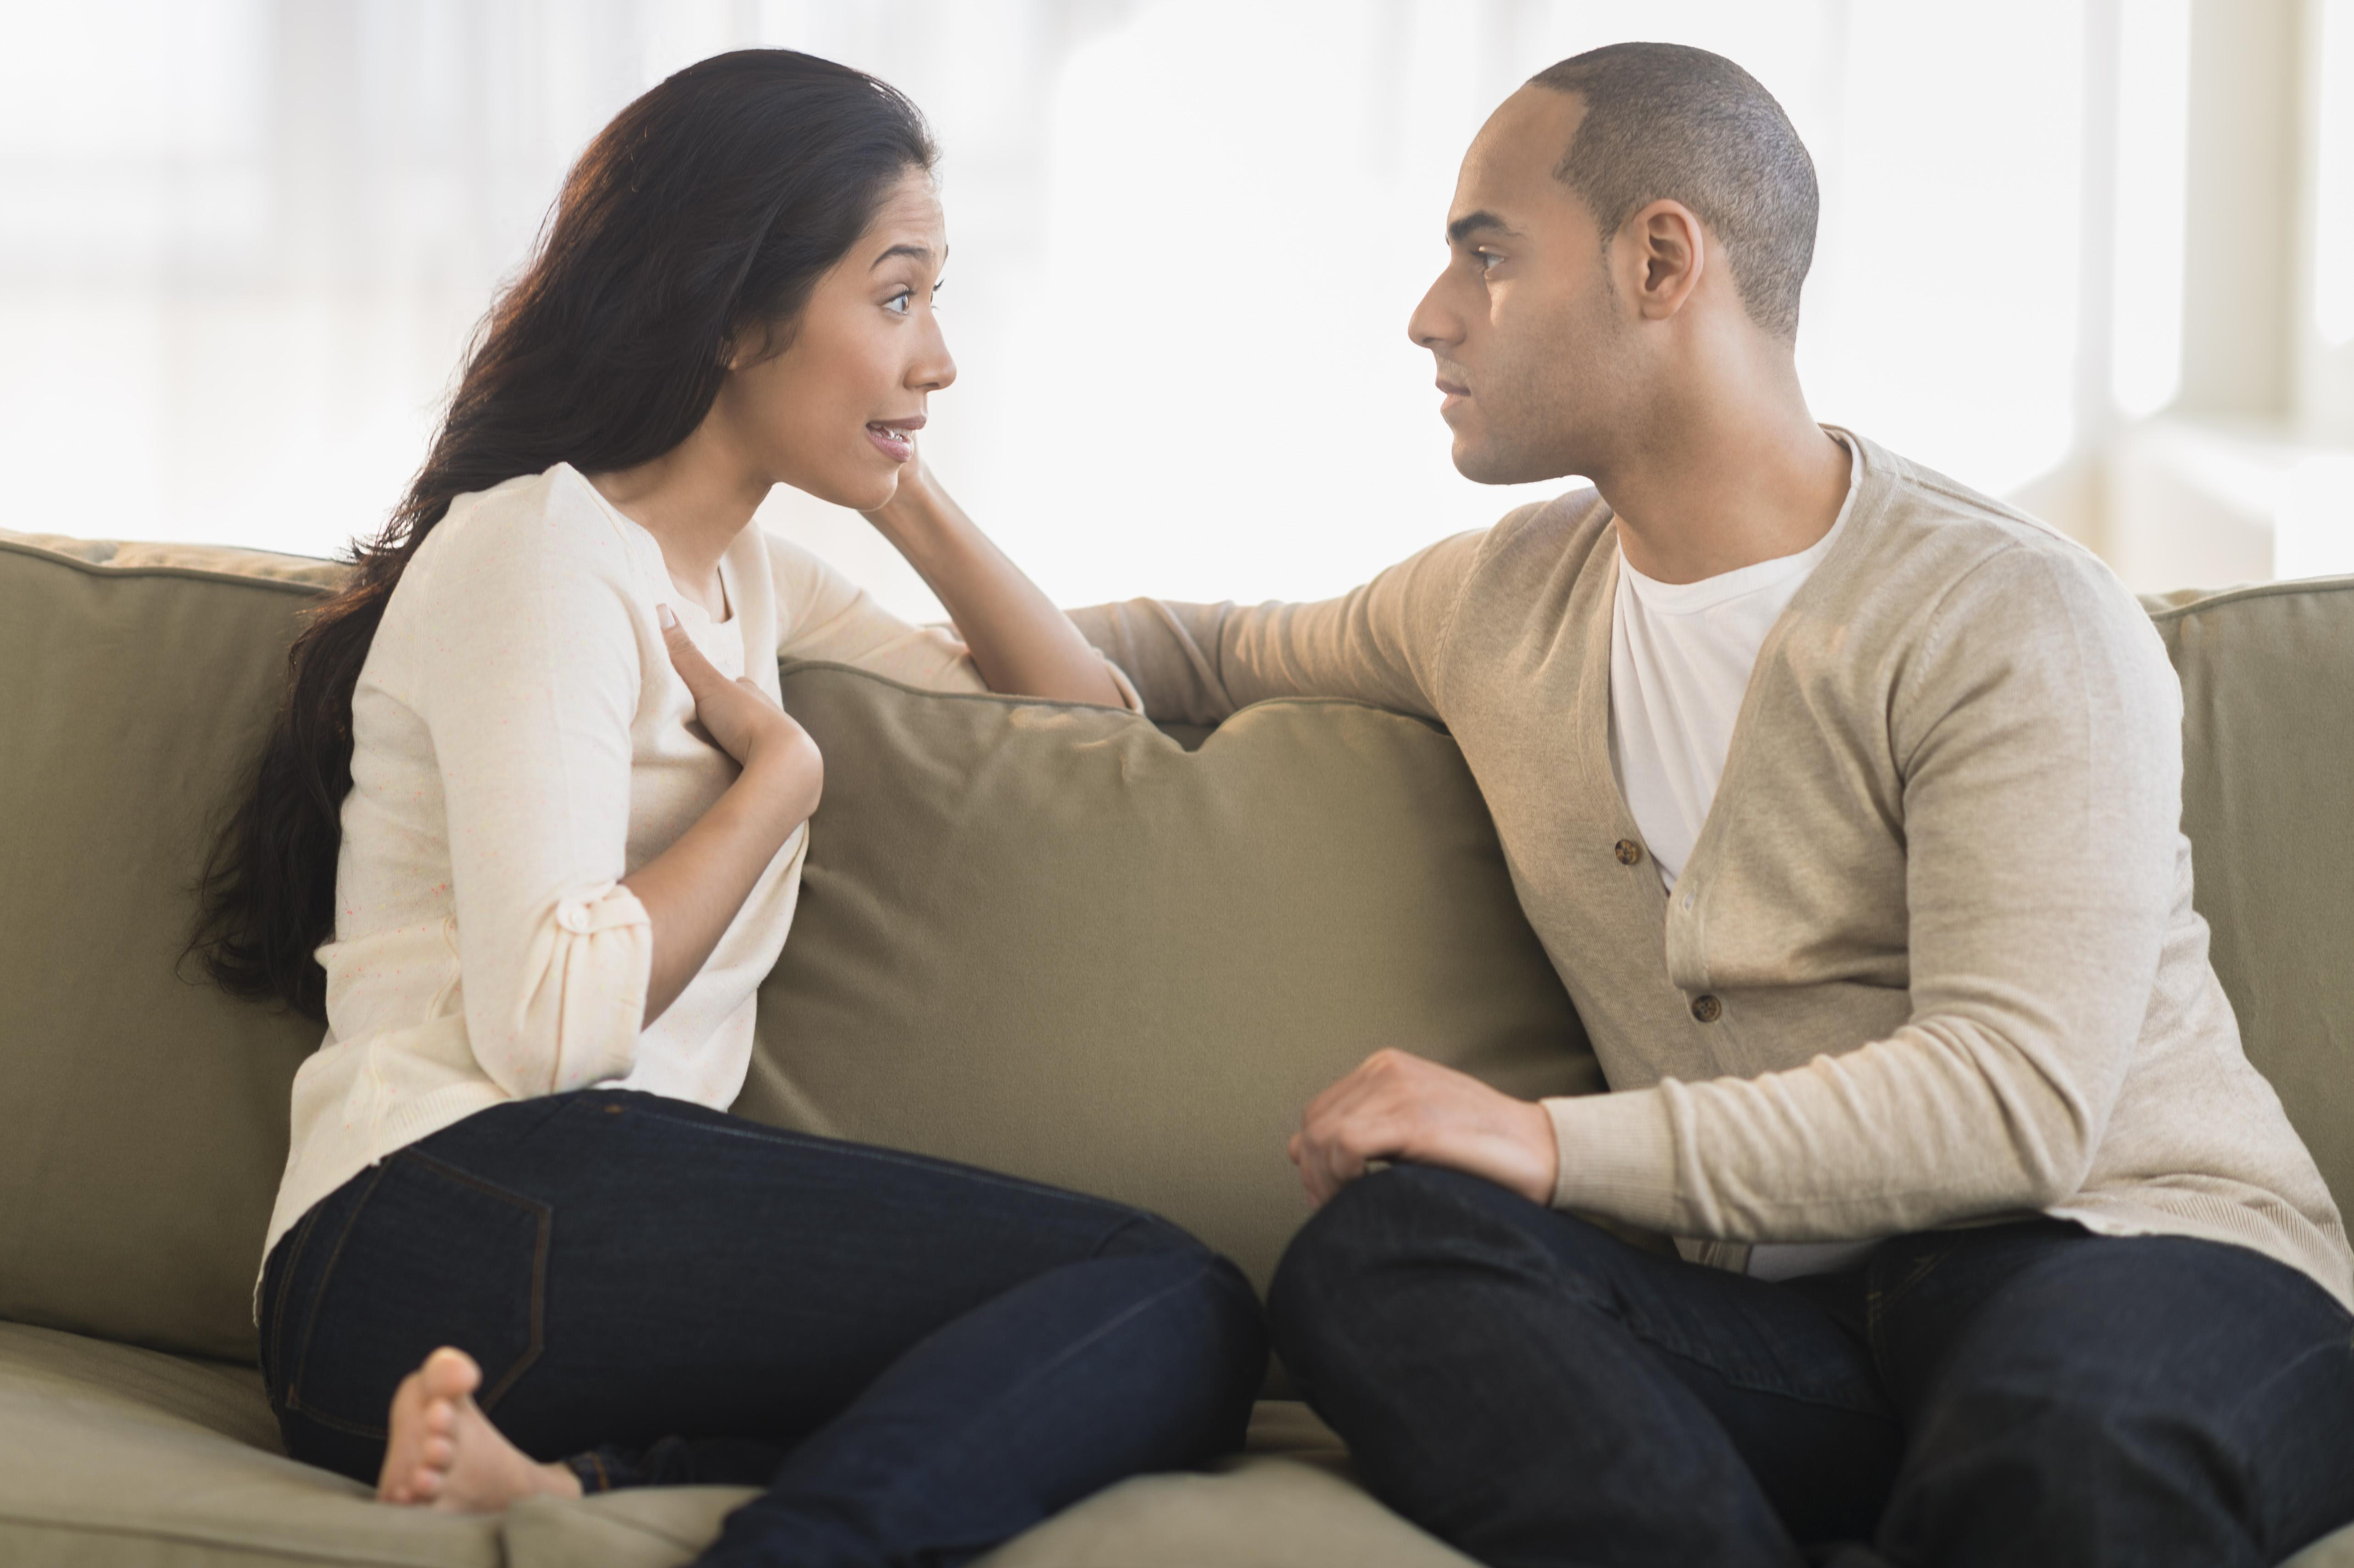 USA, New Jersey, Jersey City, Young couple sitting on couch